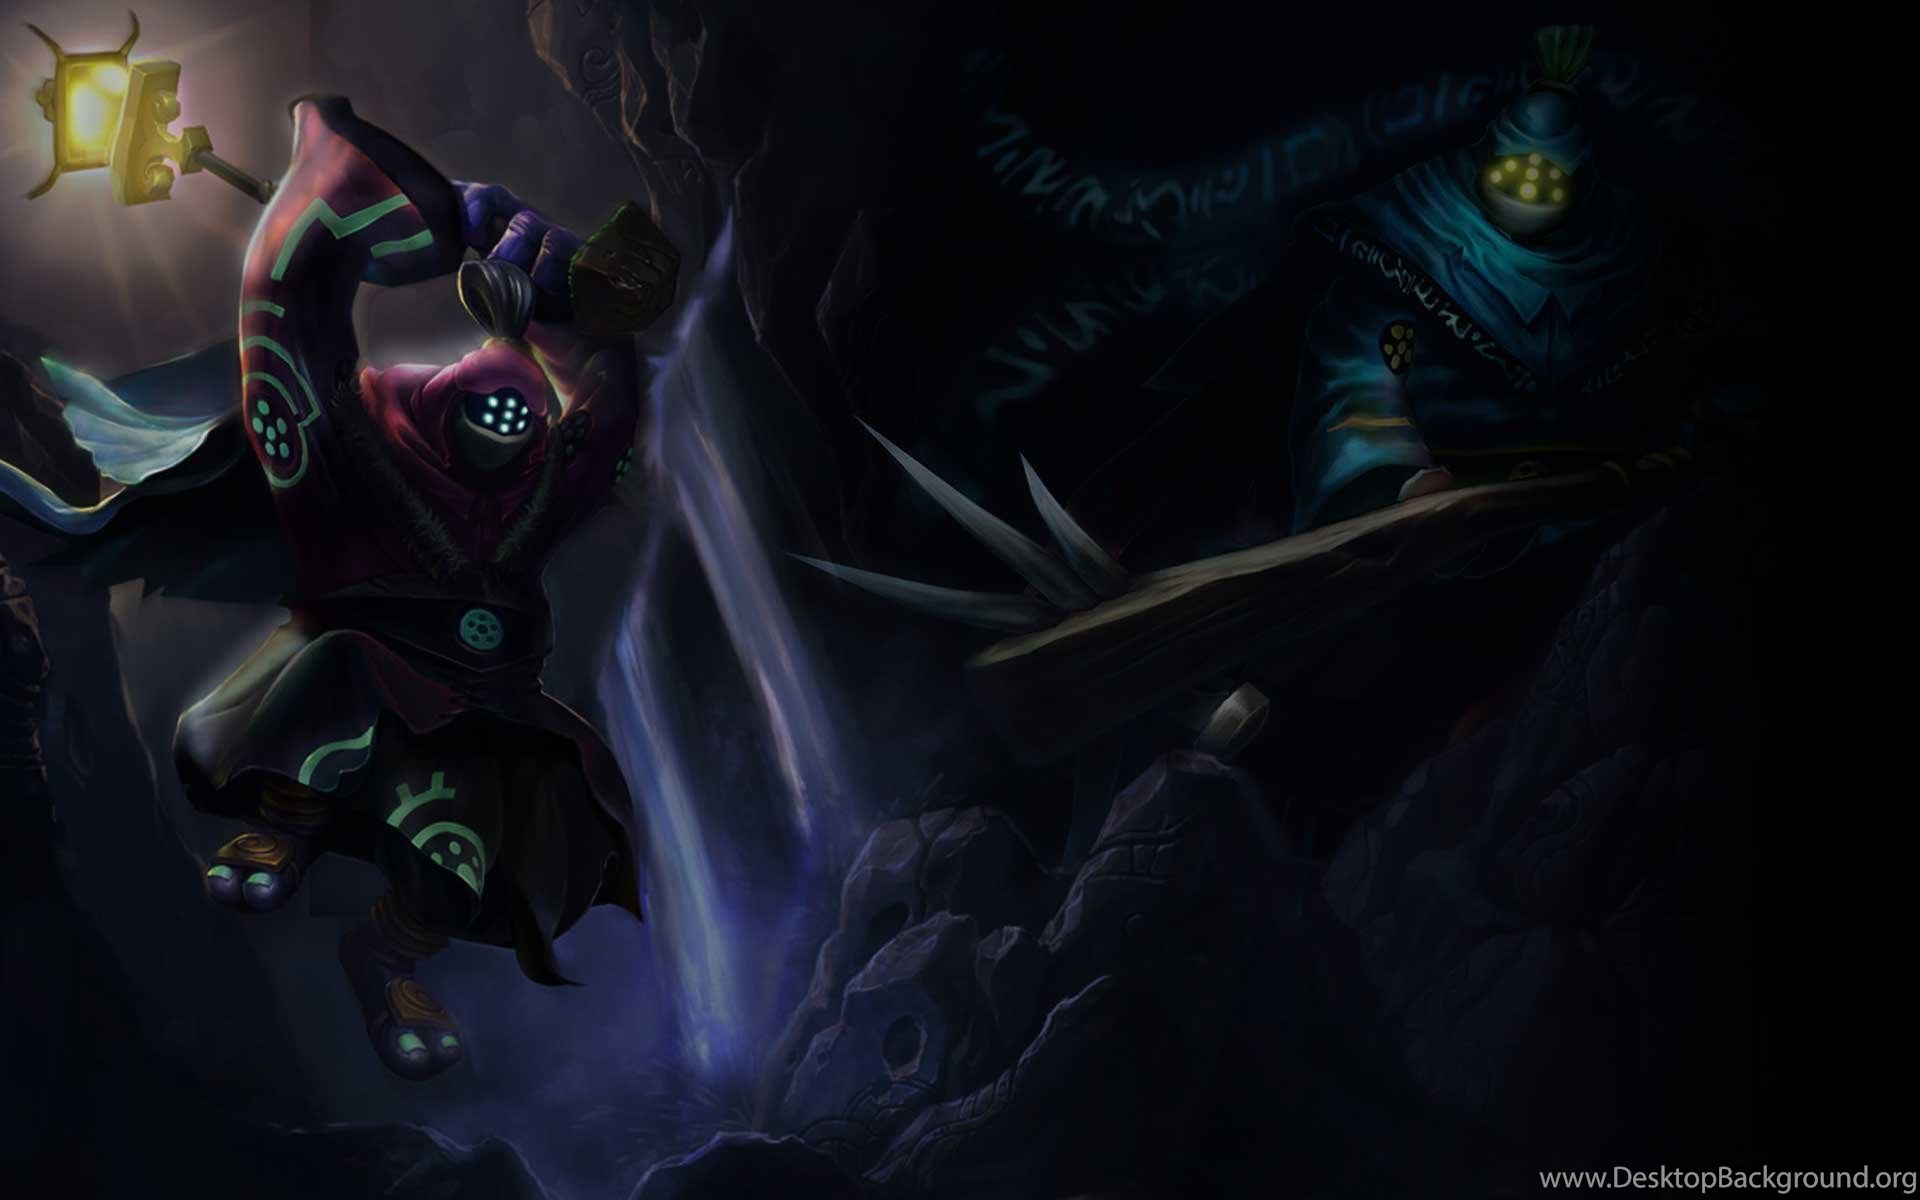 Free Wallpapers Jax League Of Legends Wallpapers Desktop Background